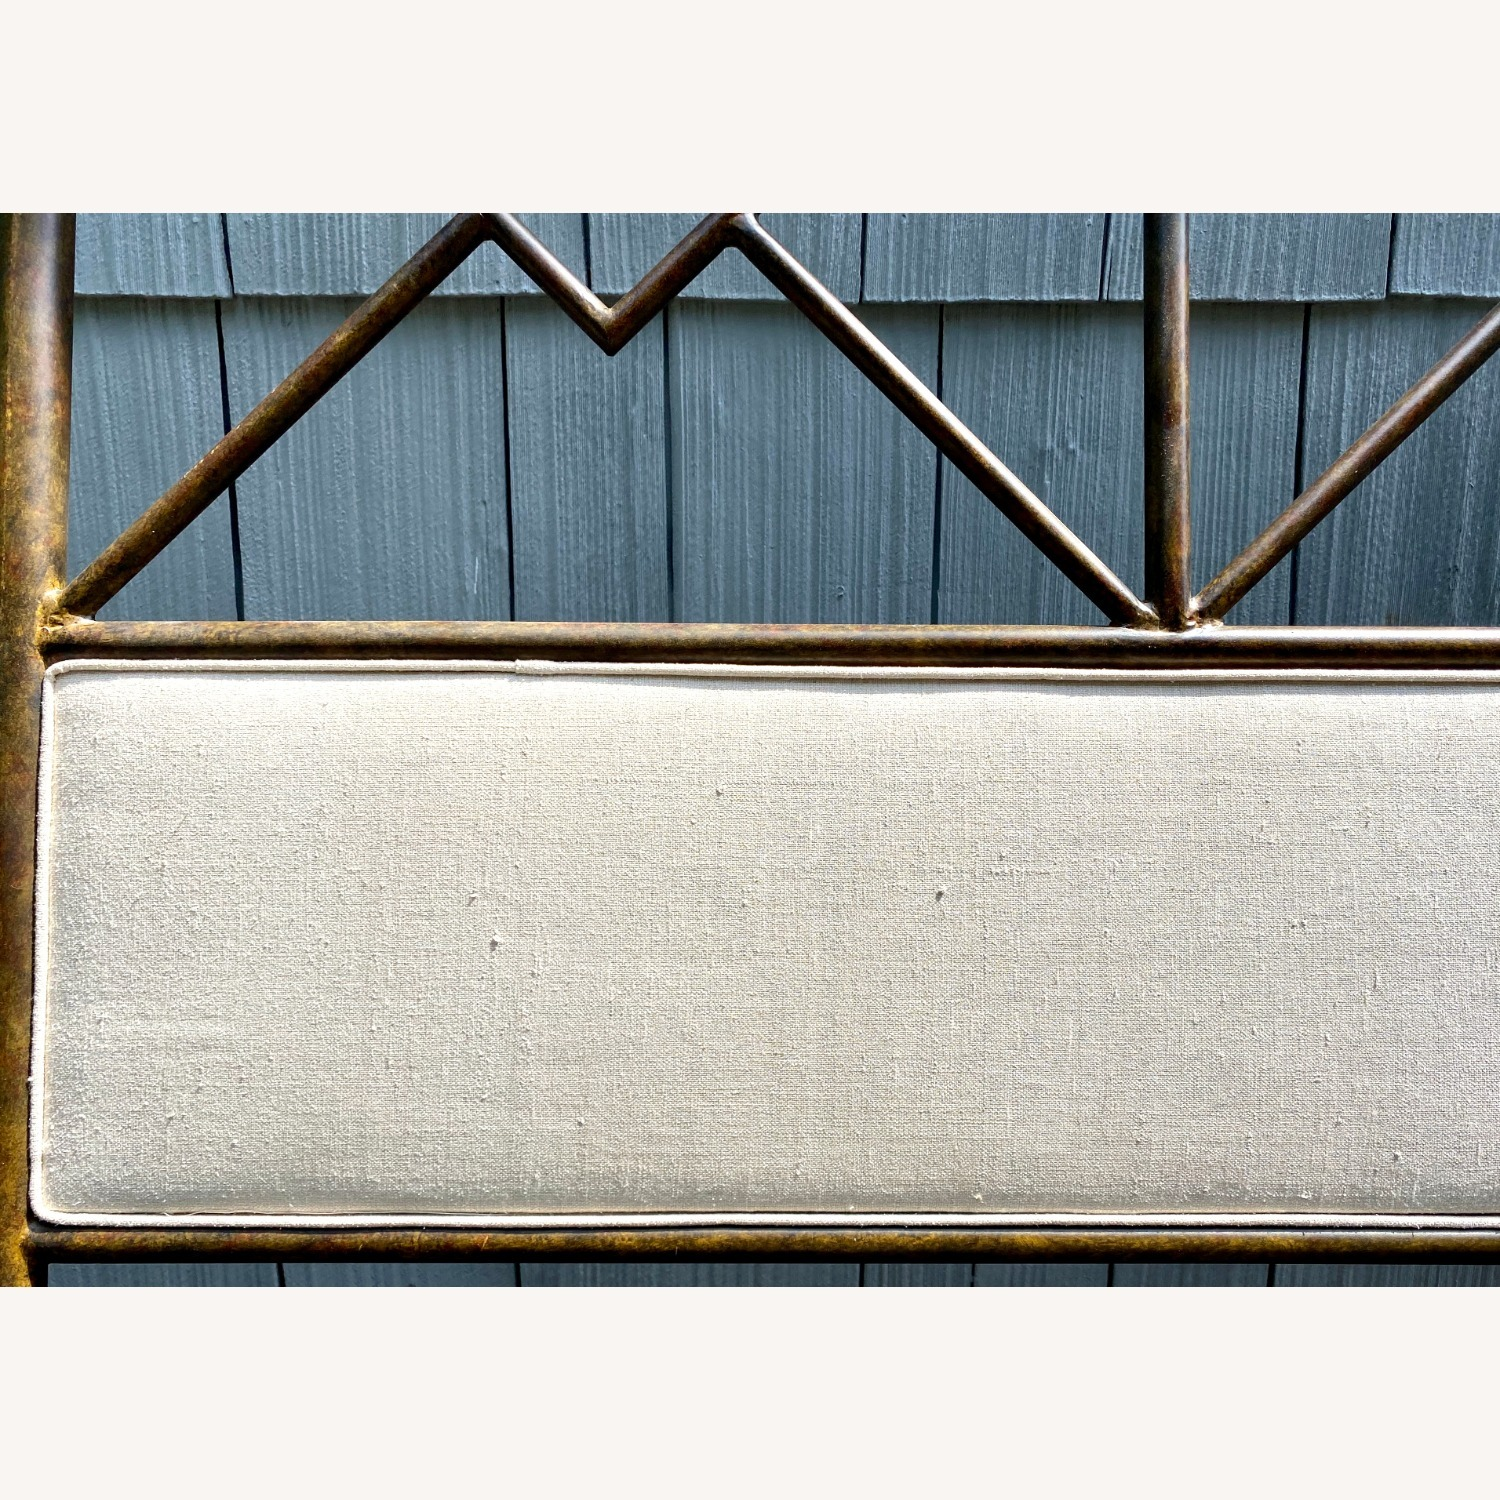 King Sized Canopy Iron Bed Frame - image-5